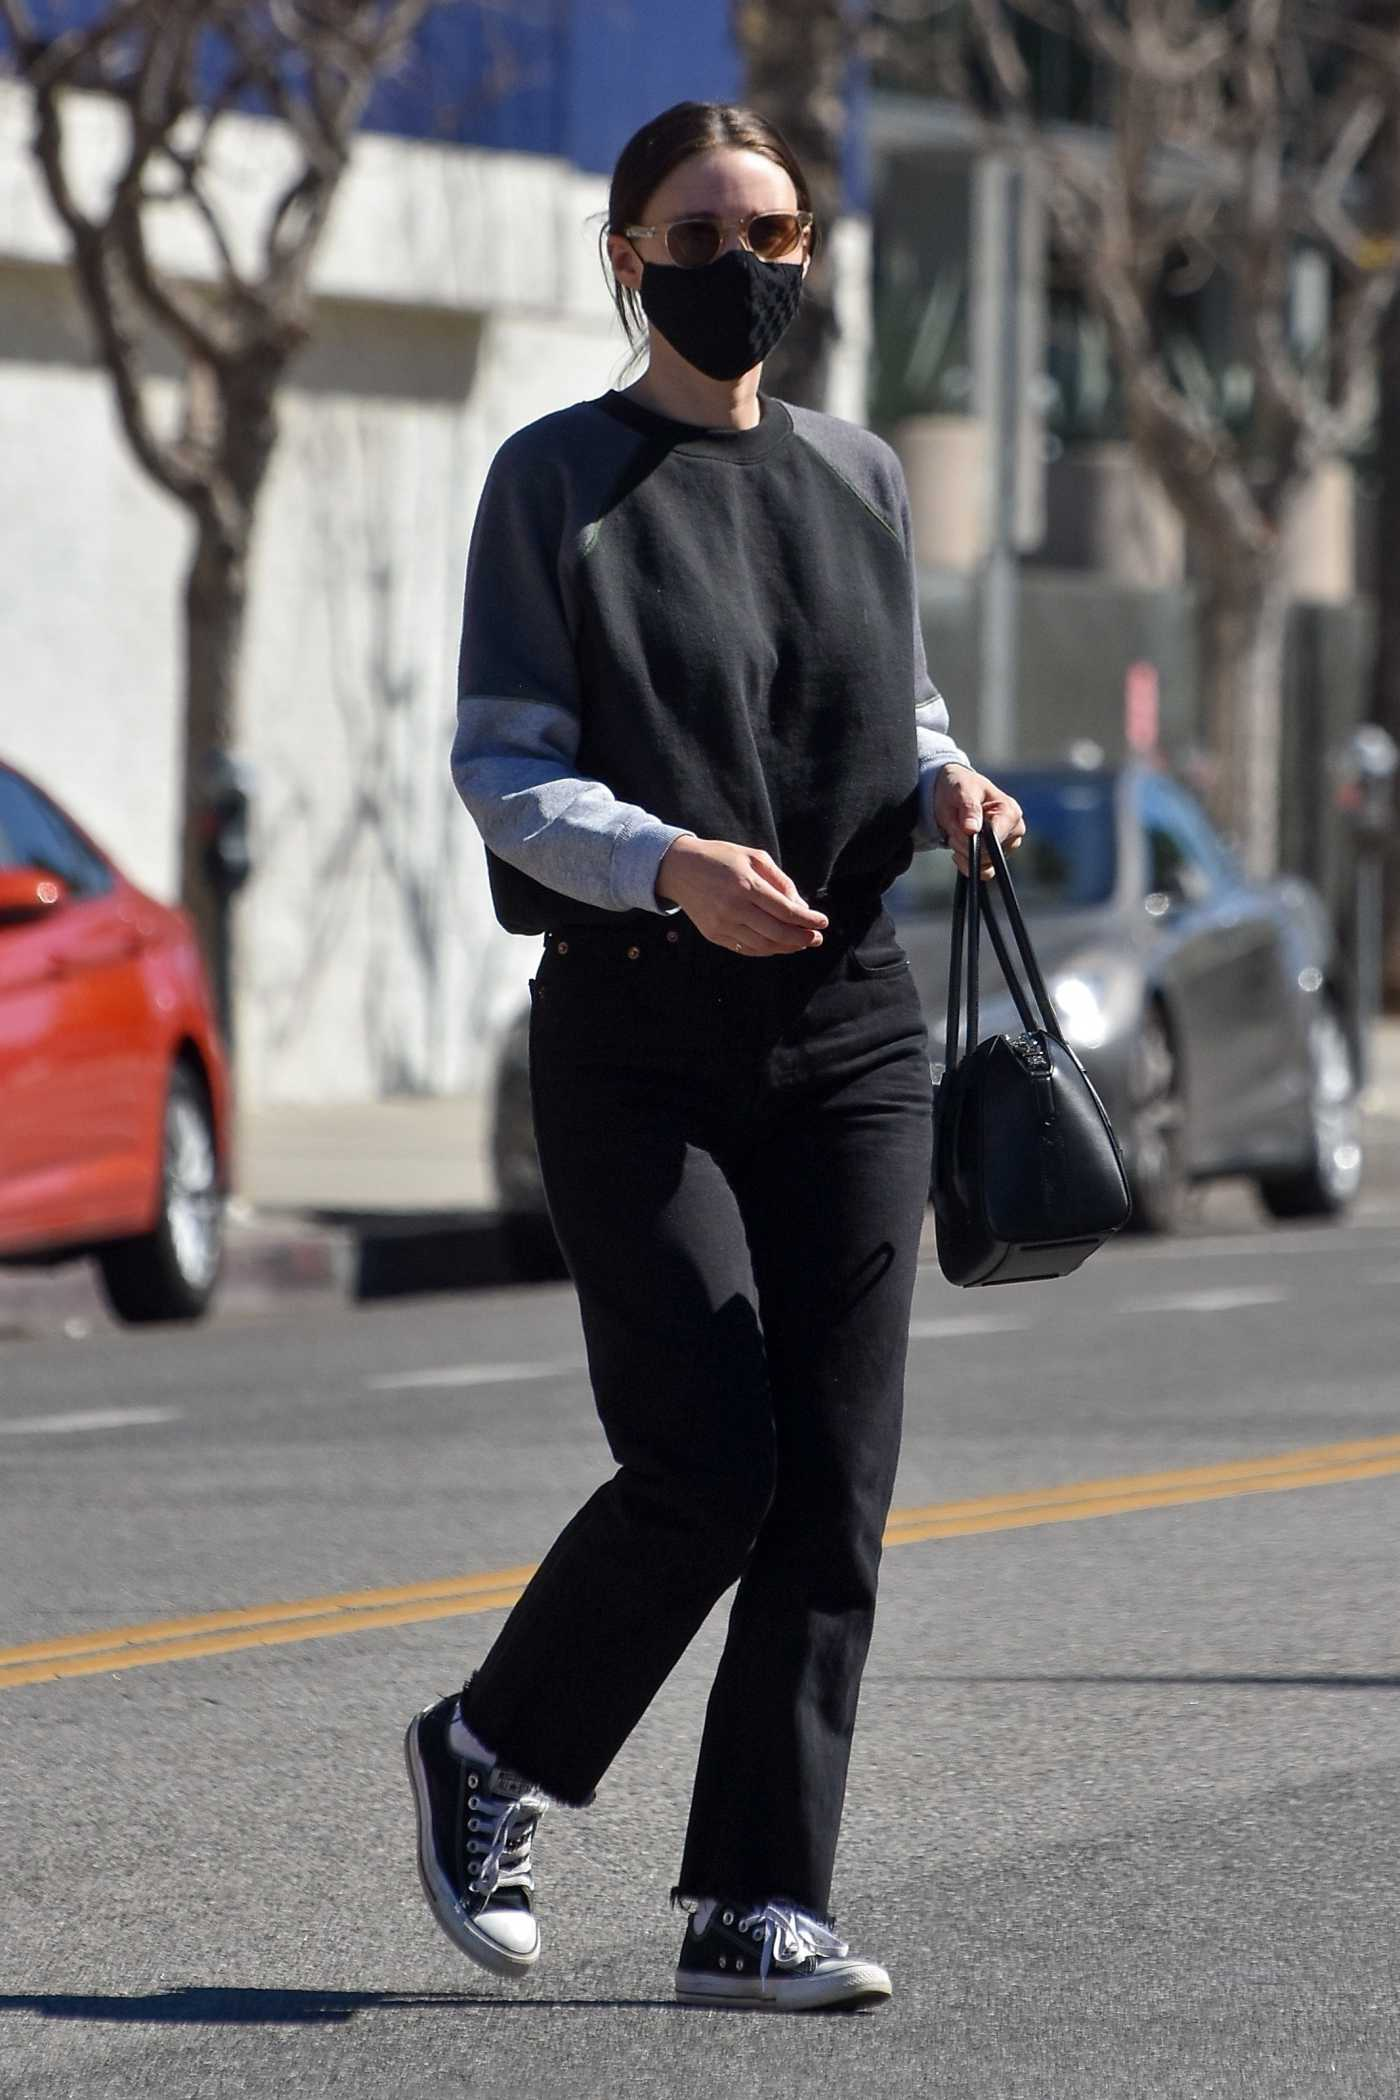 Rooney Mara in a Black Outfit Was Spotted in Studio City 02/22/2021